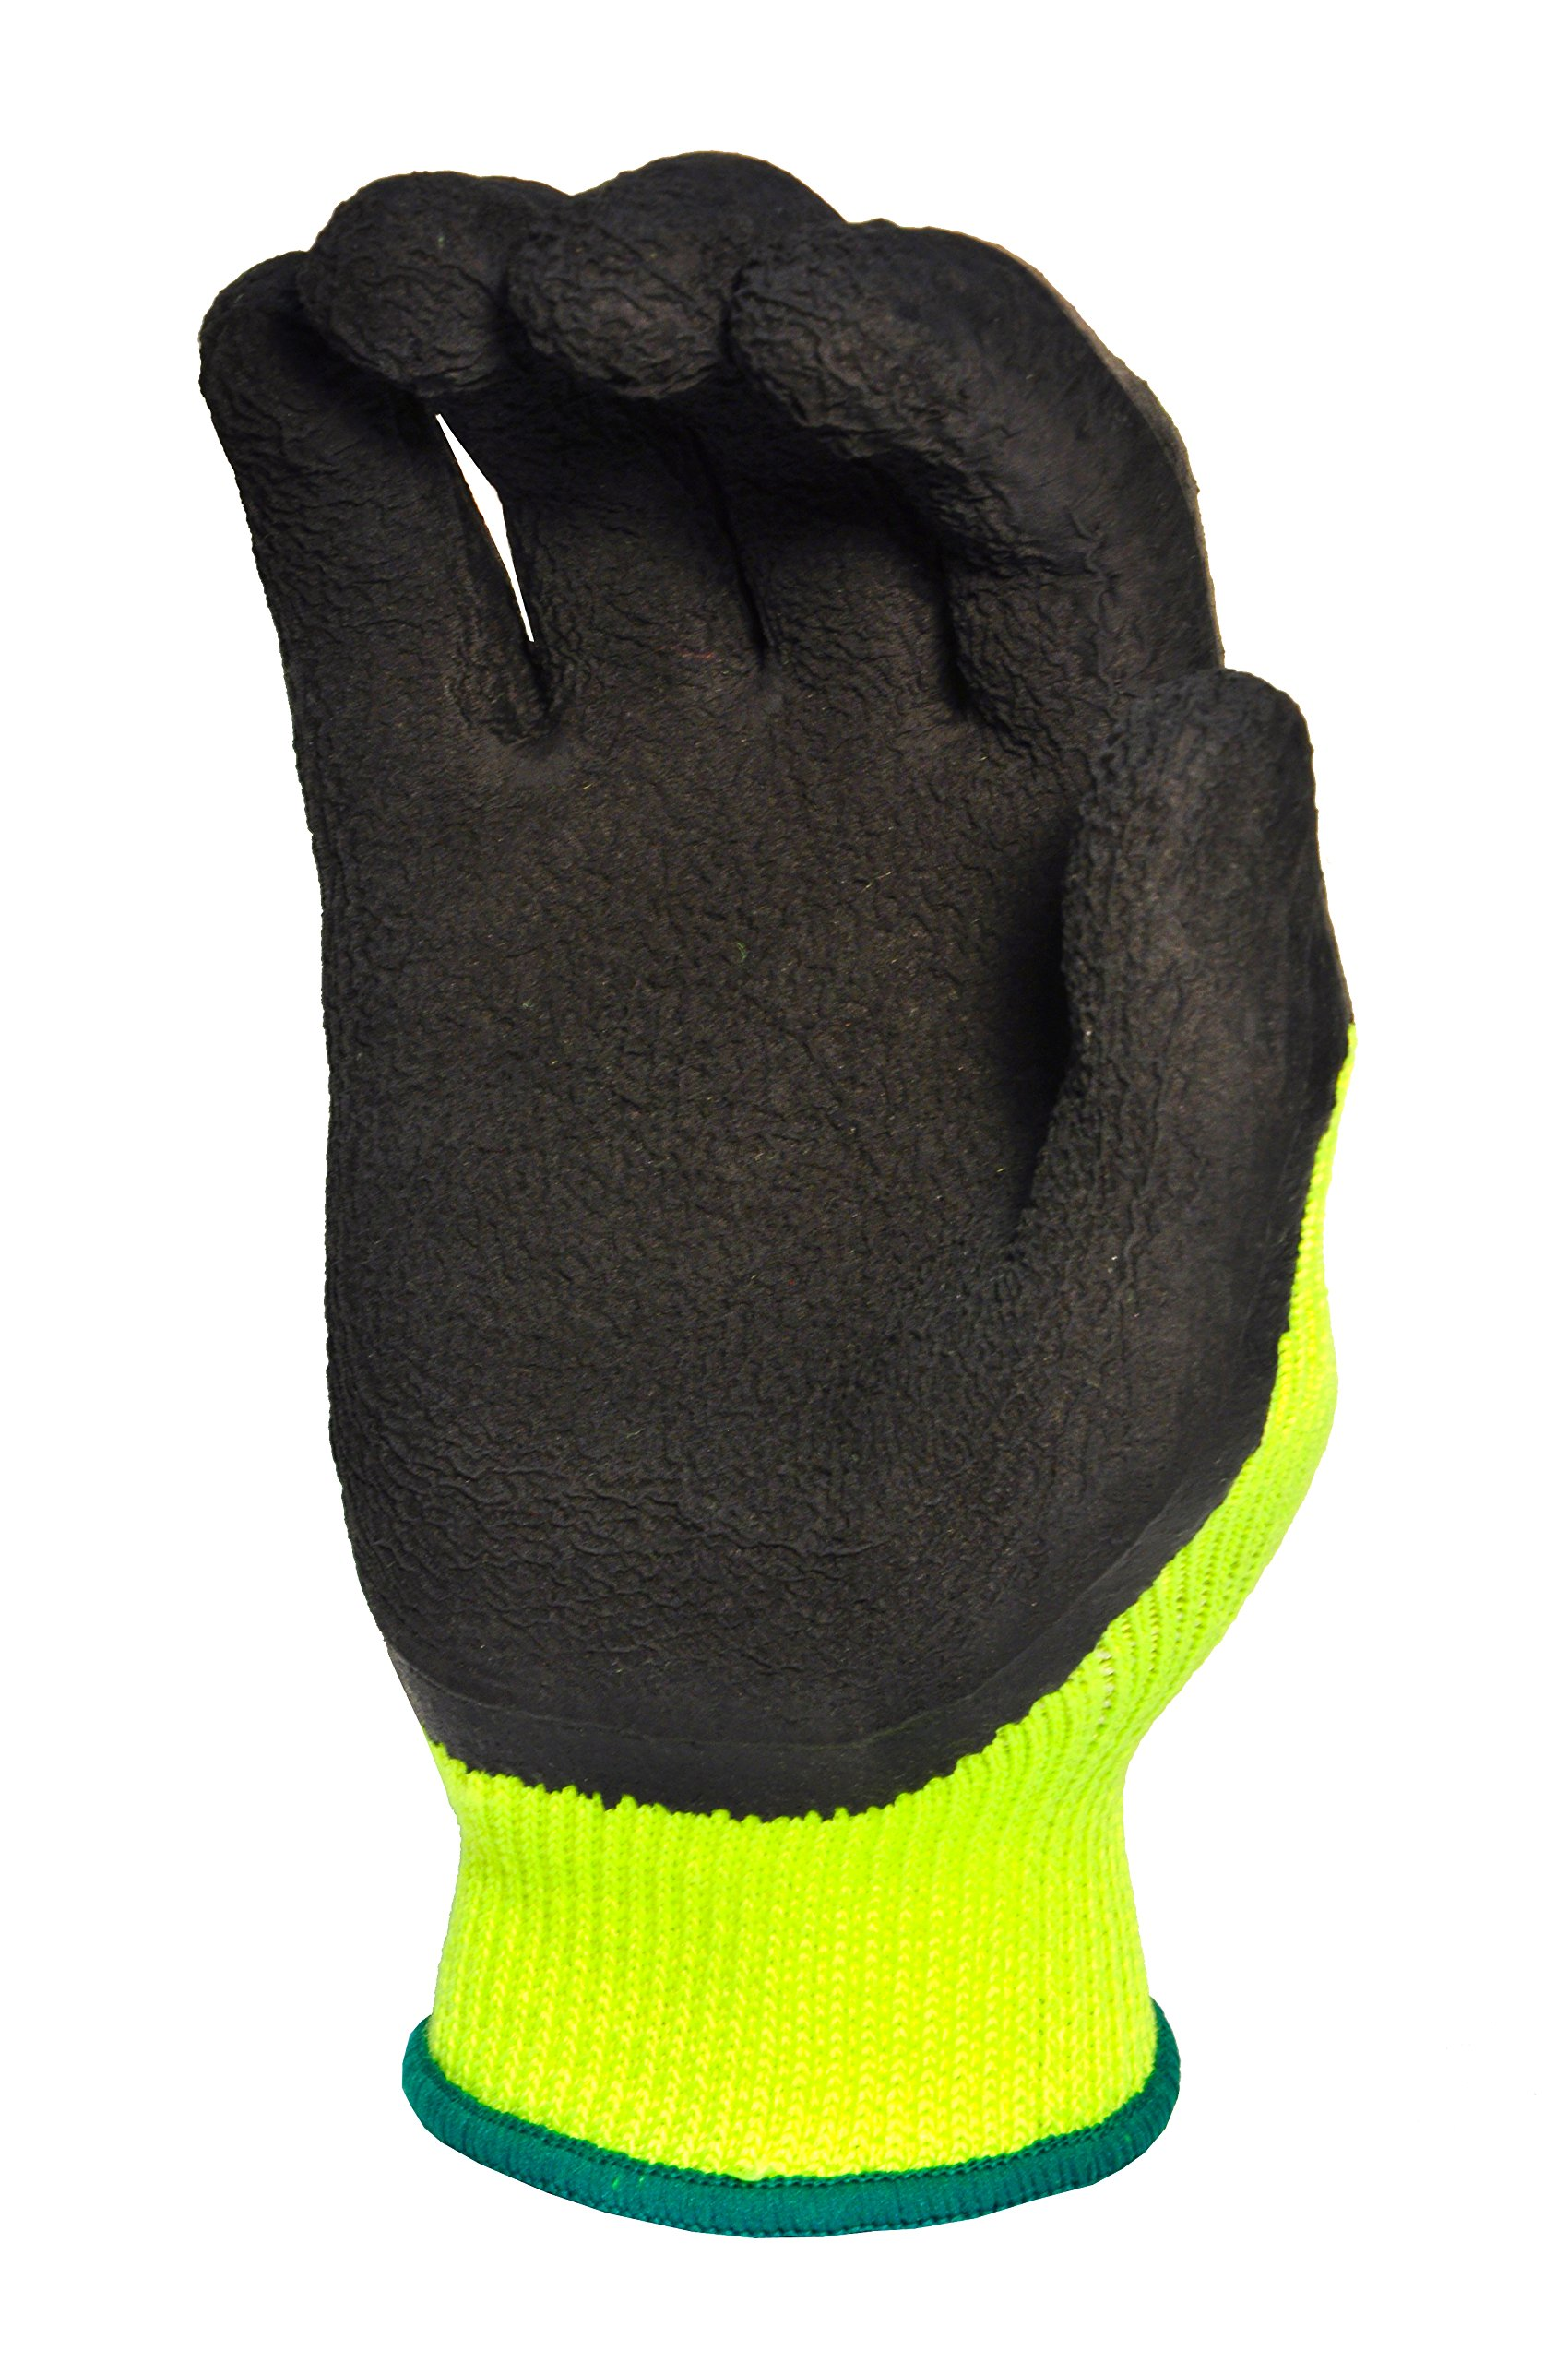 G & F 1516XL-3 Premium High Visibility Work Gloves for General Purpose, MicroFoam Double Textured Latex Coated Work Gloves, Garden Gloves, Men and Women Work Gloves, XLarge, 3 Pair Pack by G & F Products (Image #3)